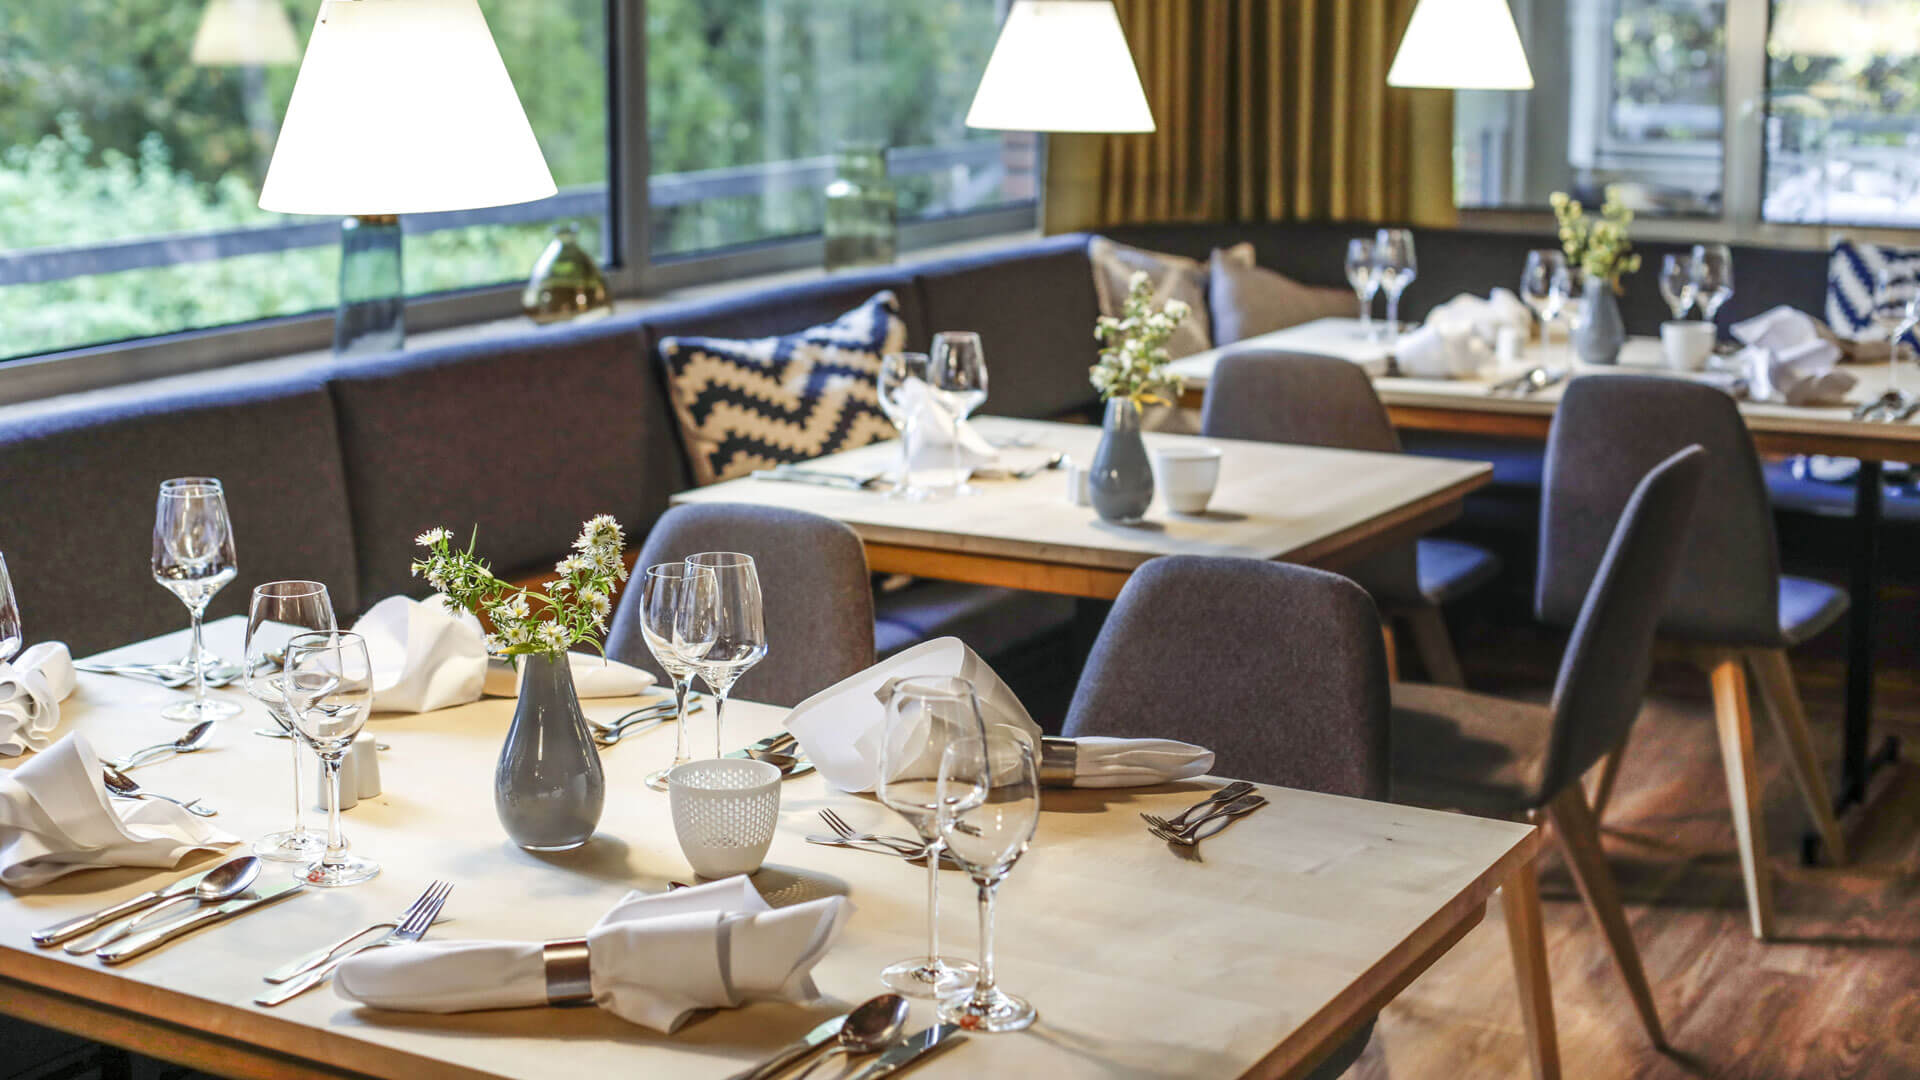 Comfortable and delicious at the restaurant schulze|s © Biohotel Sturm